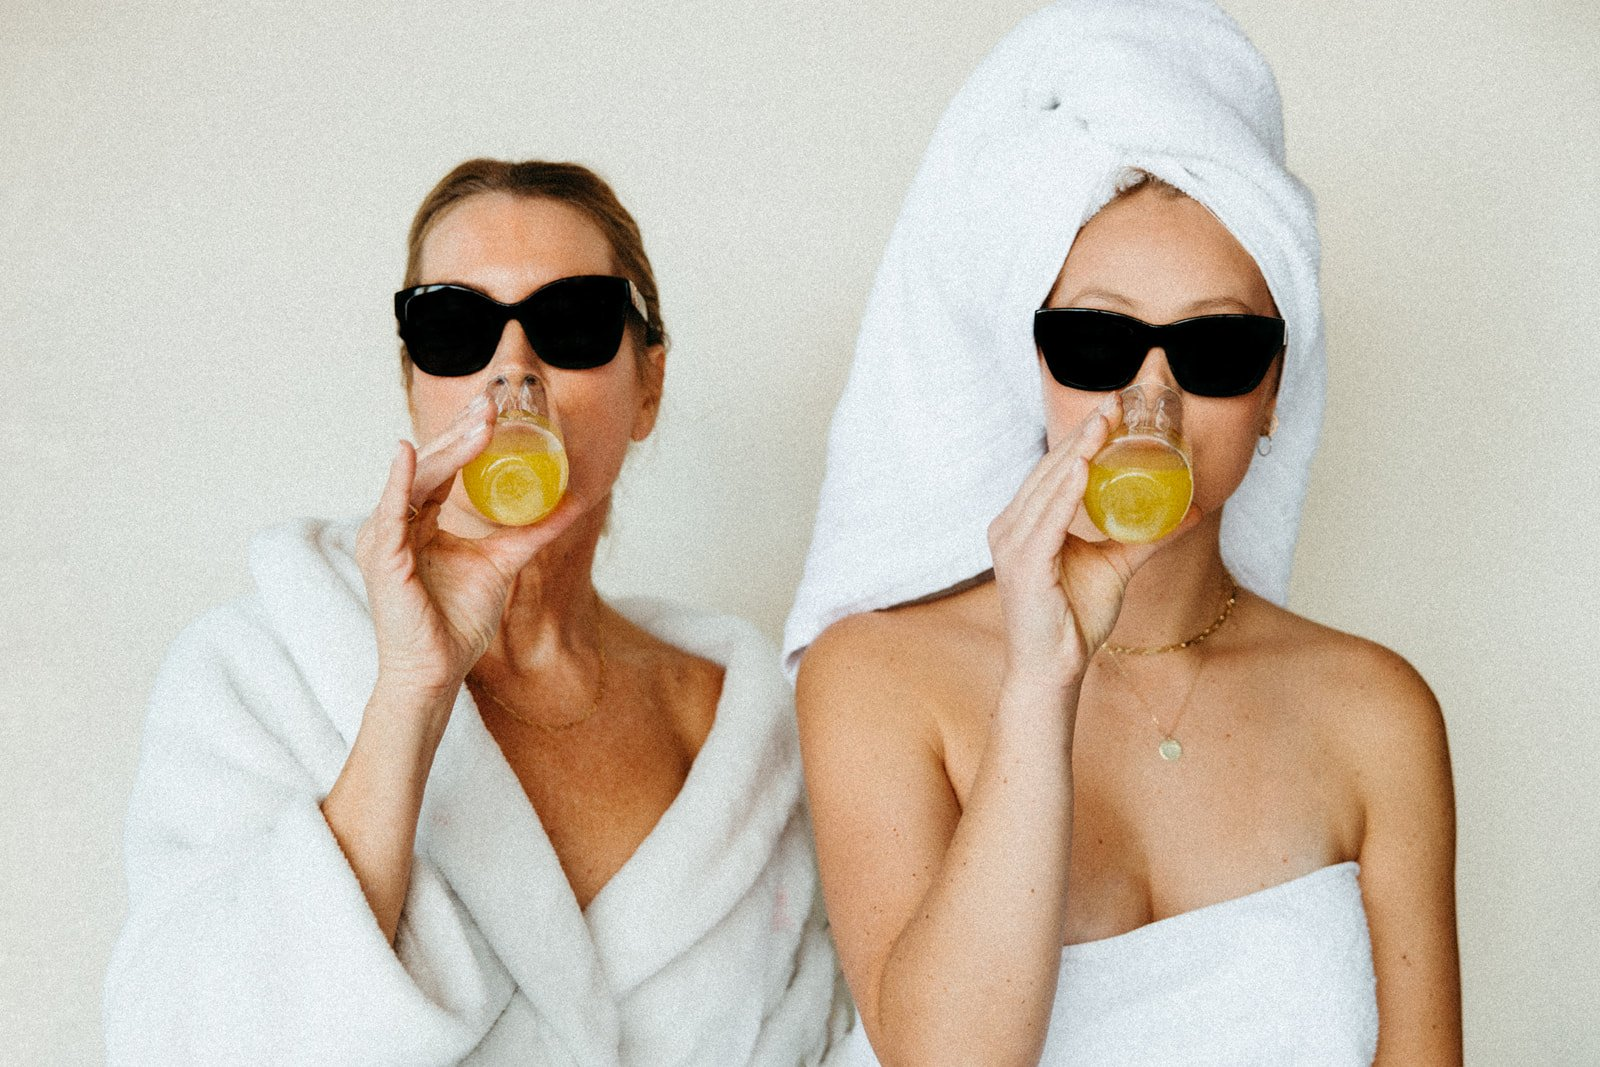 Incorporating Wellness into Luxury: Exceeding Guest Expectations in 2021